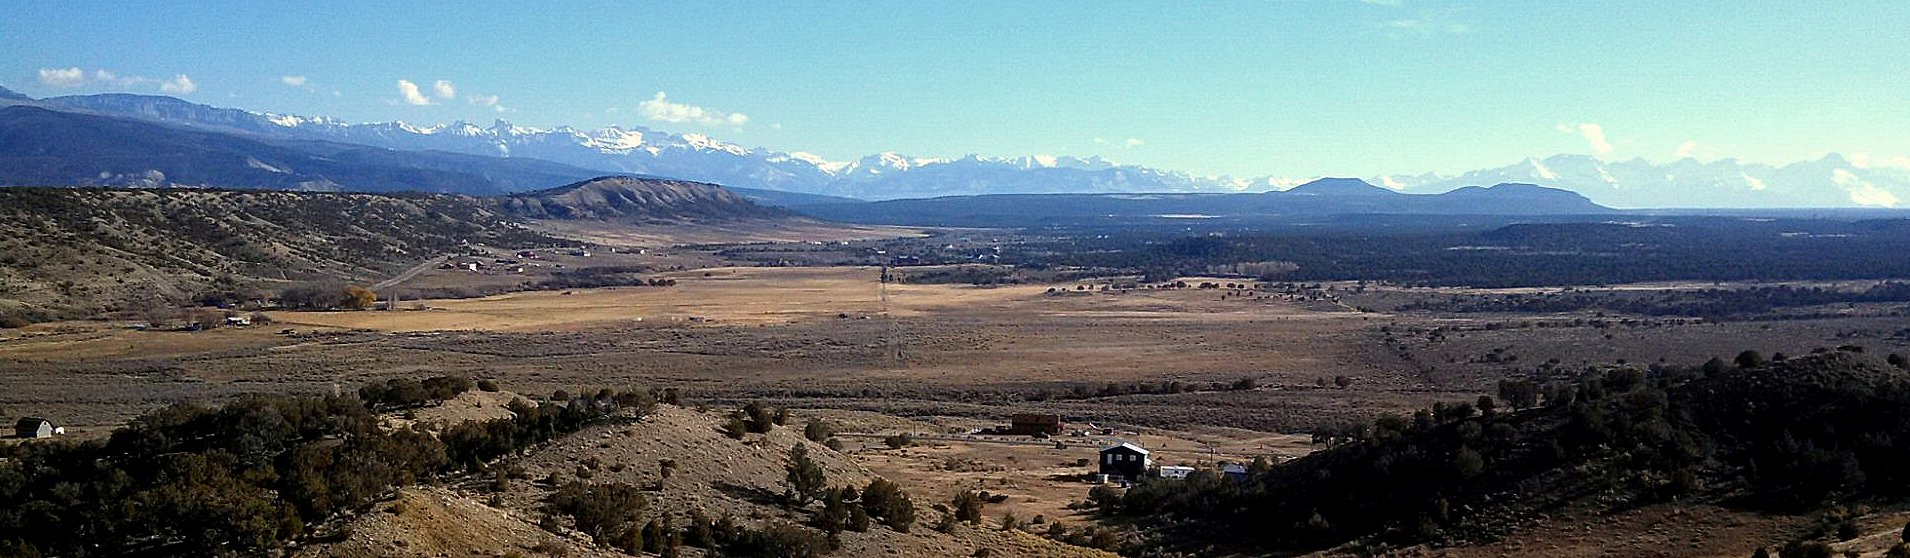 The San Juan Range in the distance south of Montrose